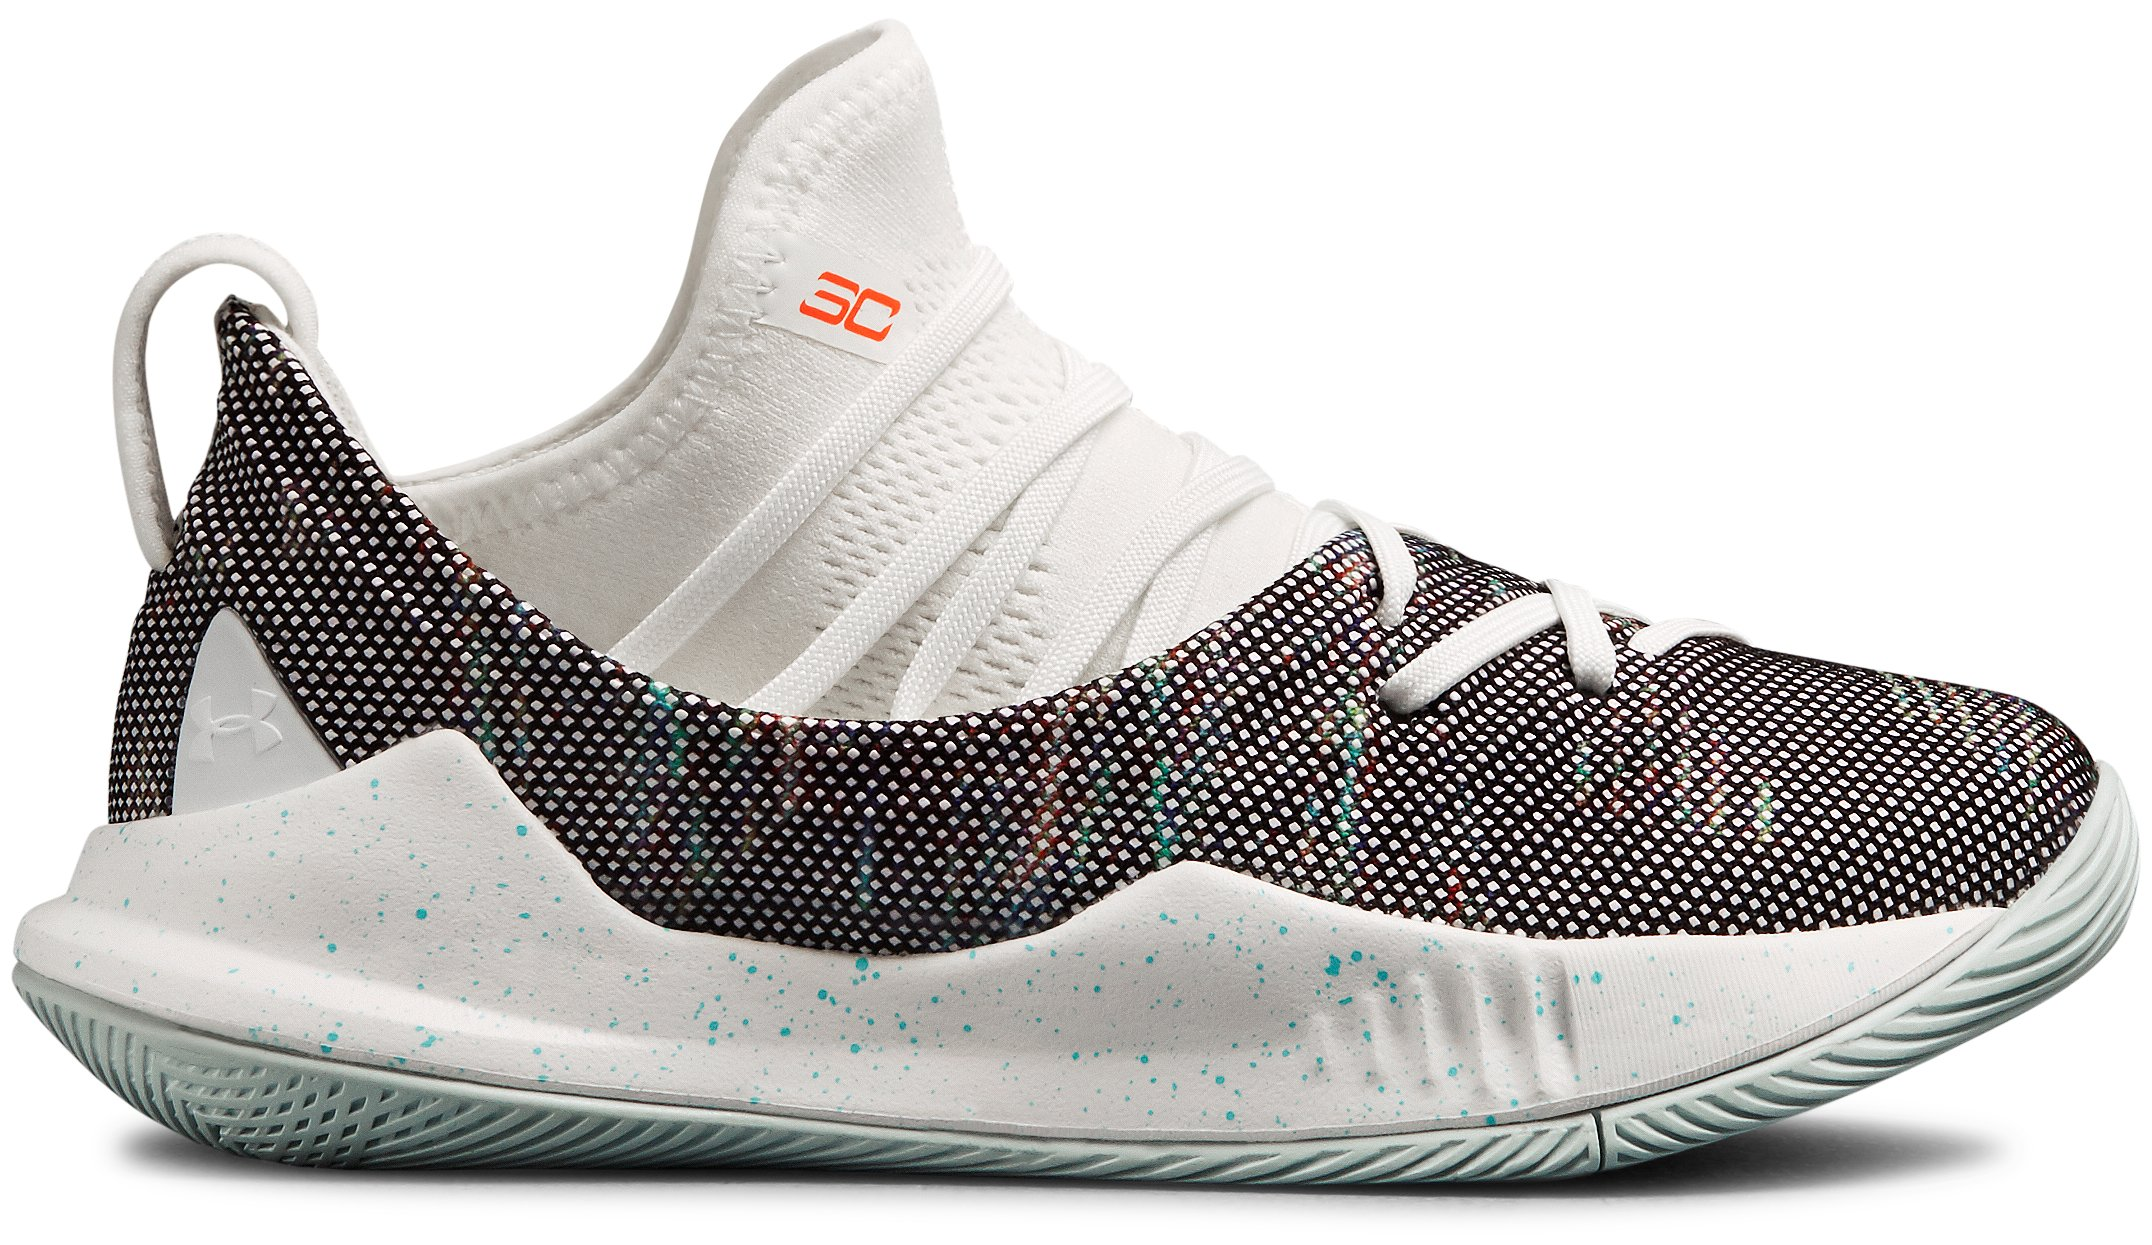 Boys' Pre-School UA Curry 5 Basketball Shoes, White